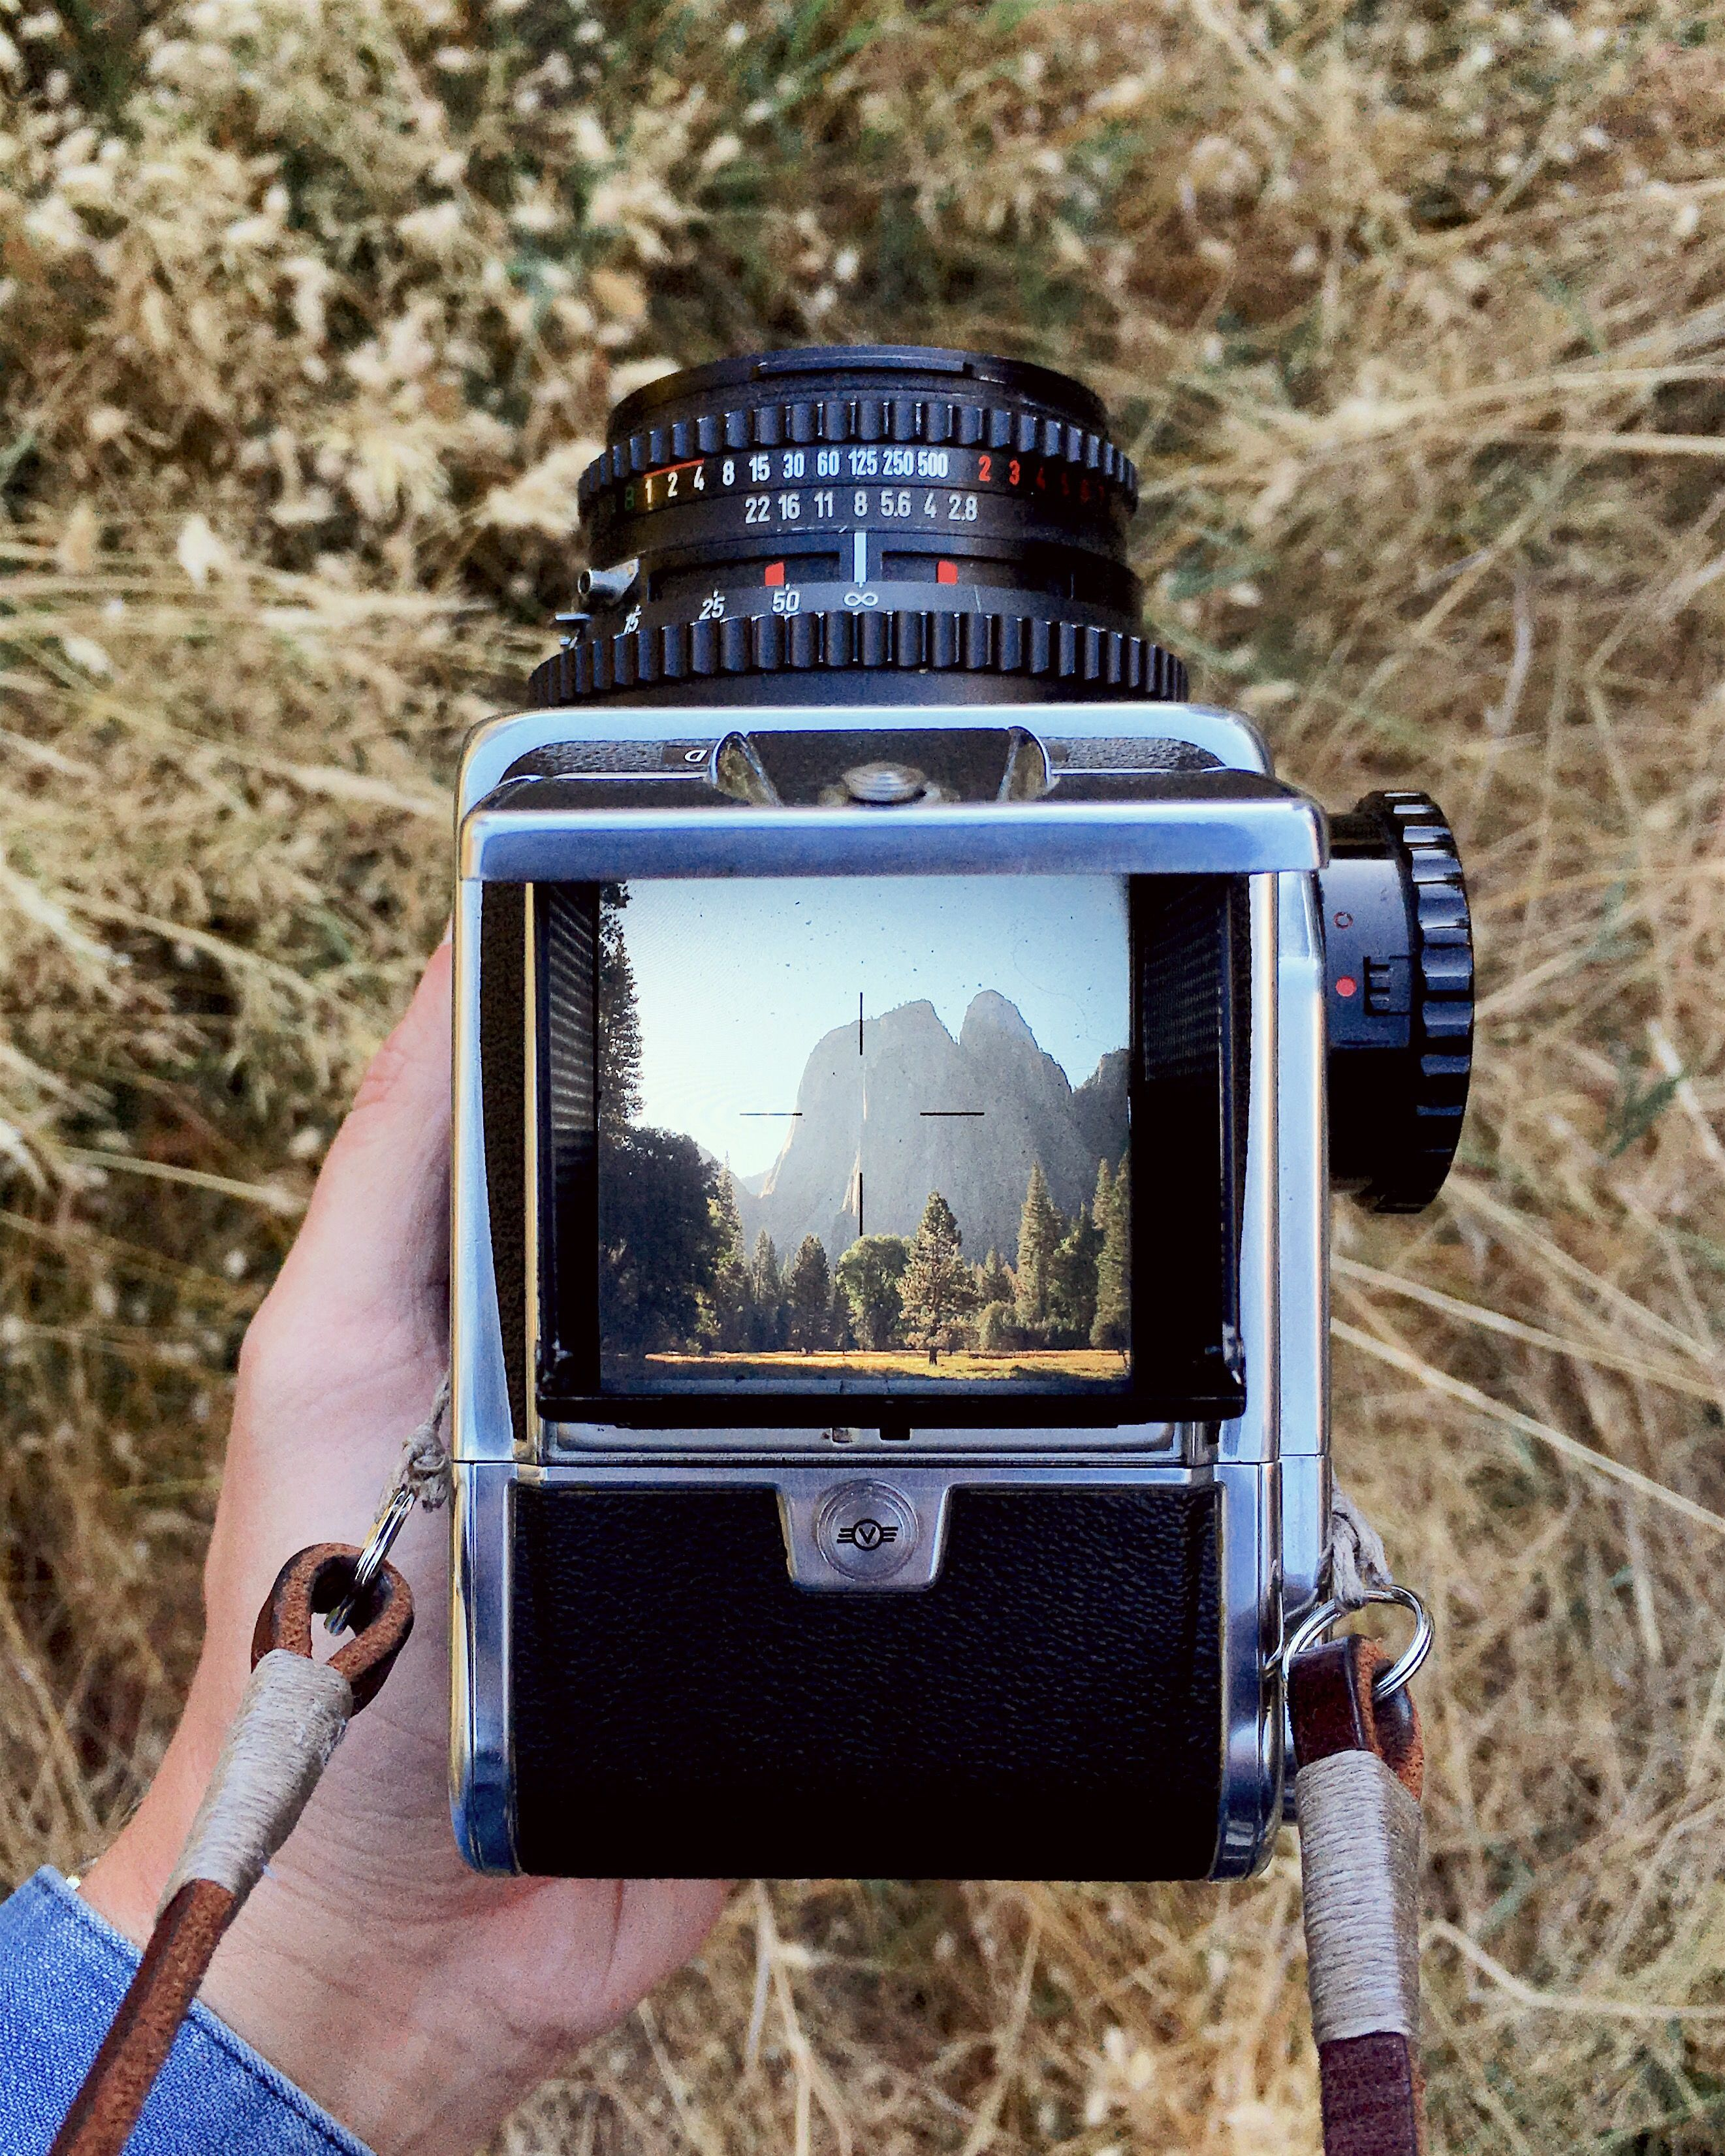 Hasselblad 500cm + Yosemite Valley by Benj Haisch | cameras